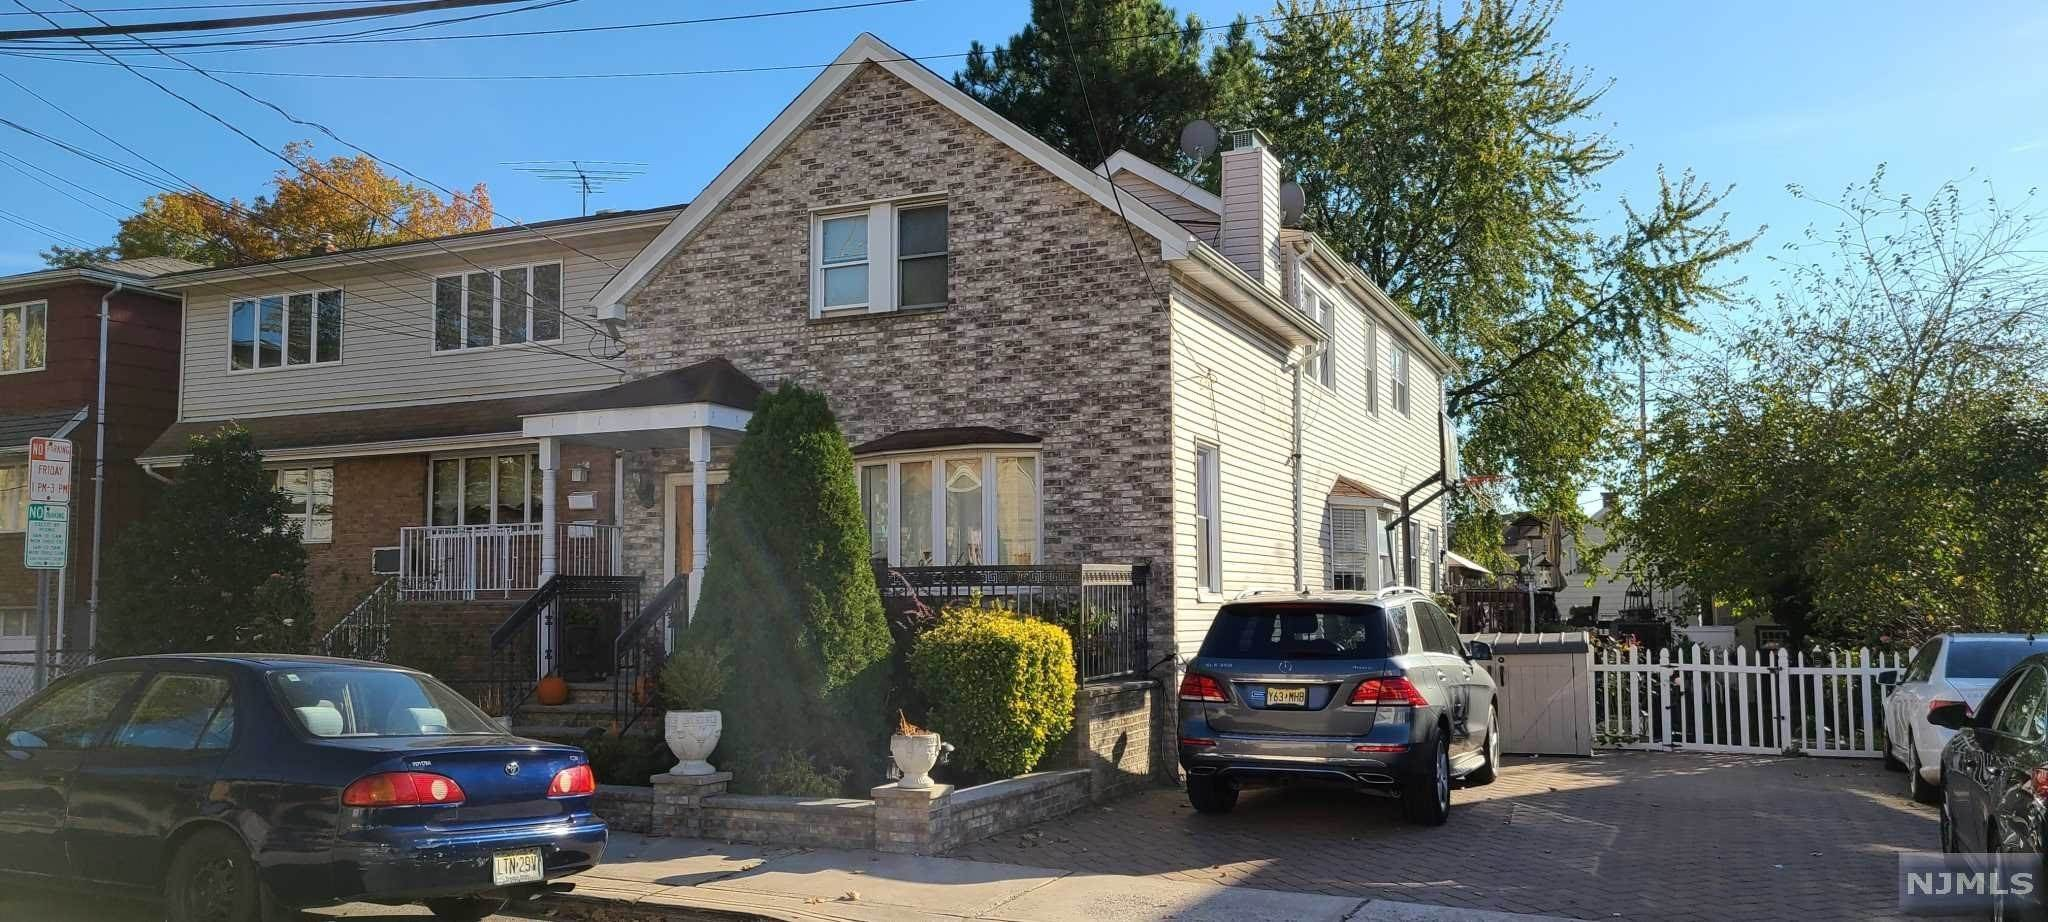 Single Family Home for Sale at 748 Probst Avenue Fairview, New Jersey, 07022 United States